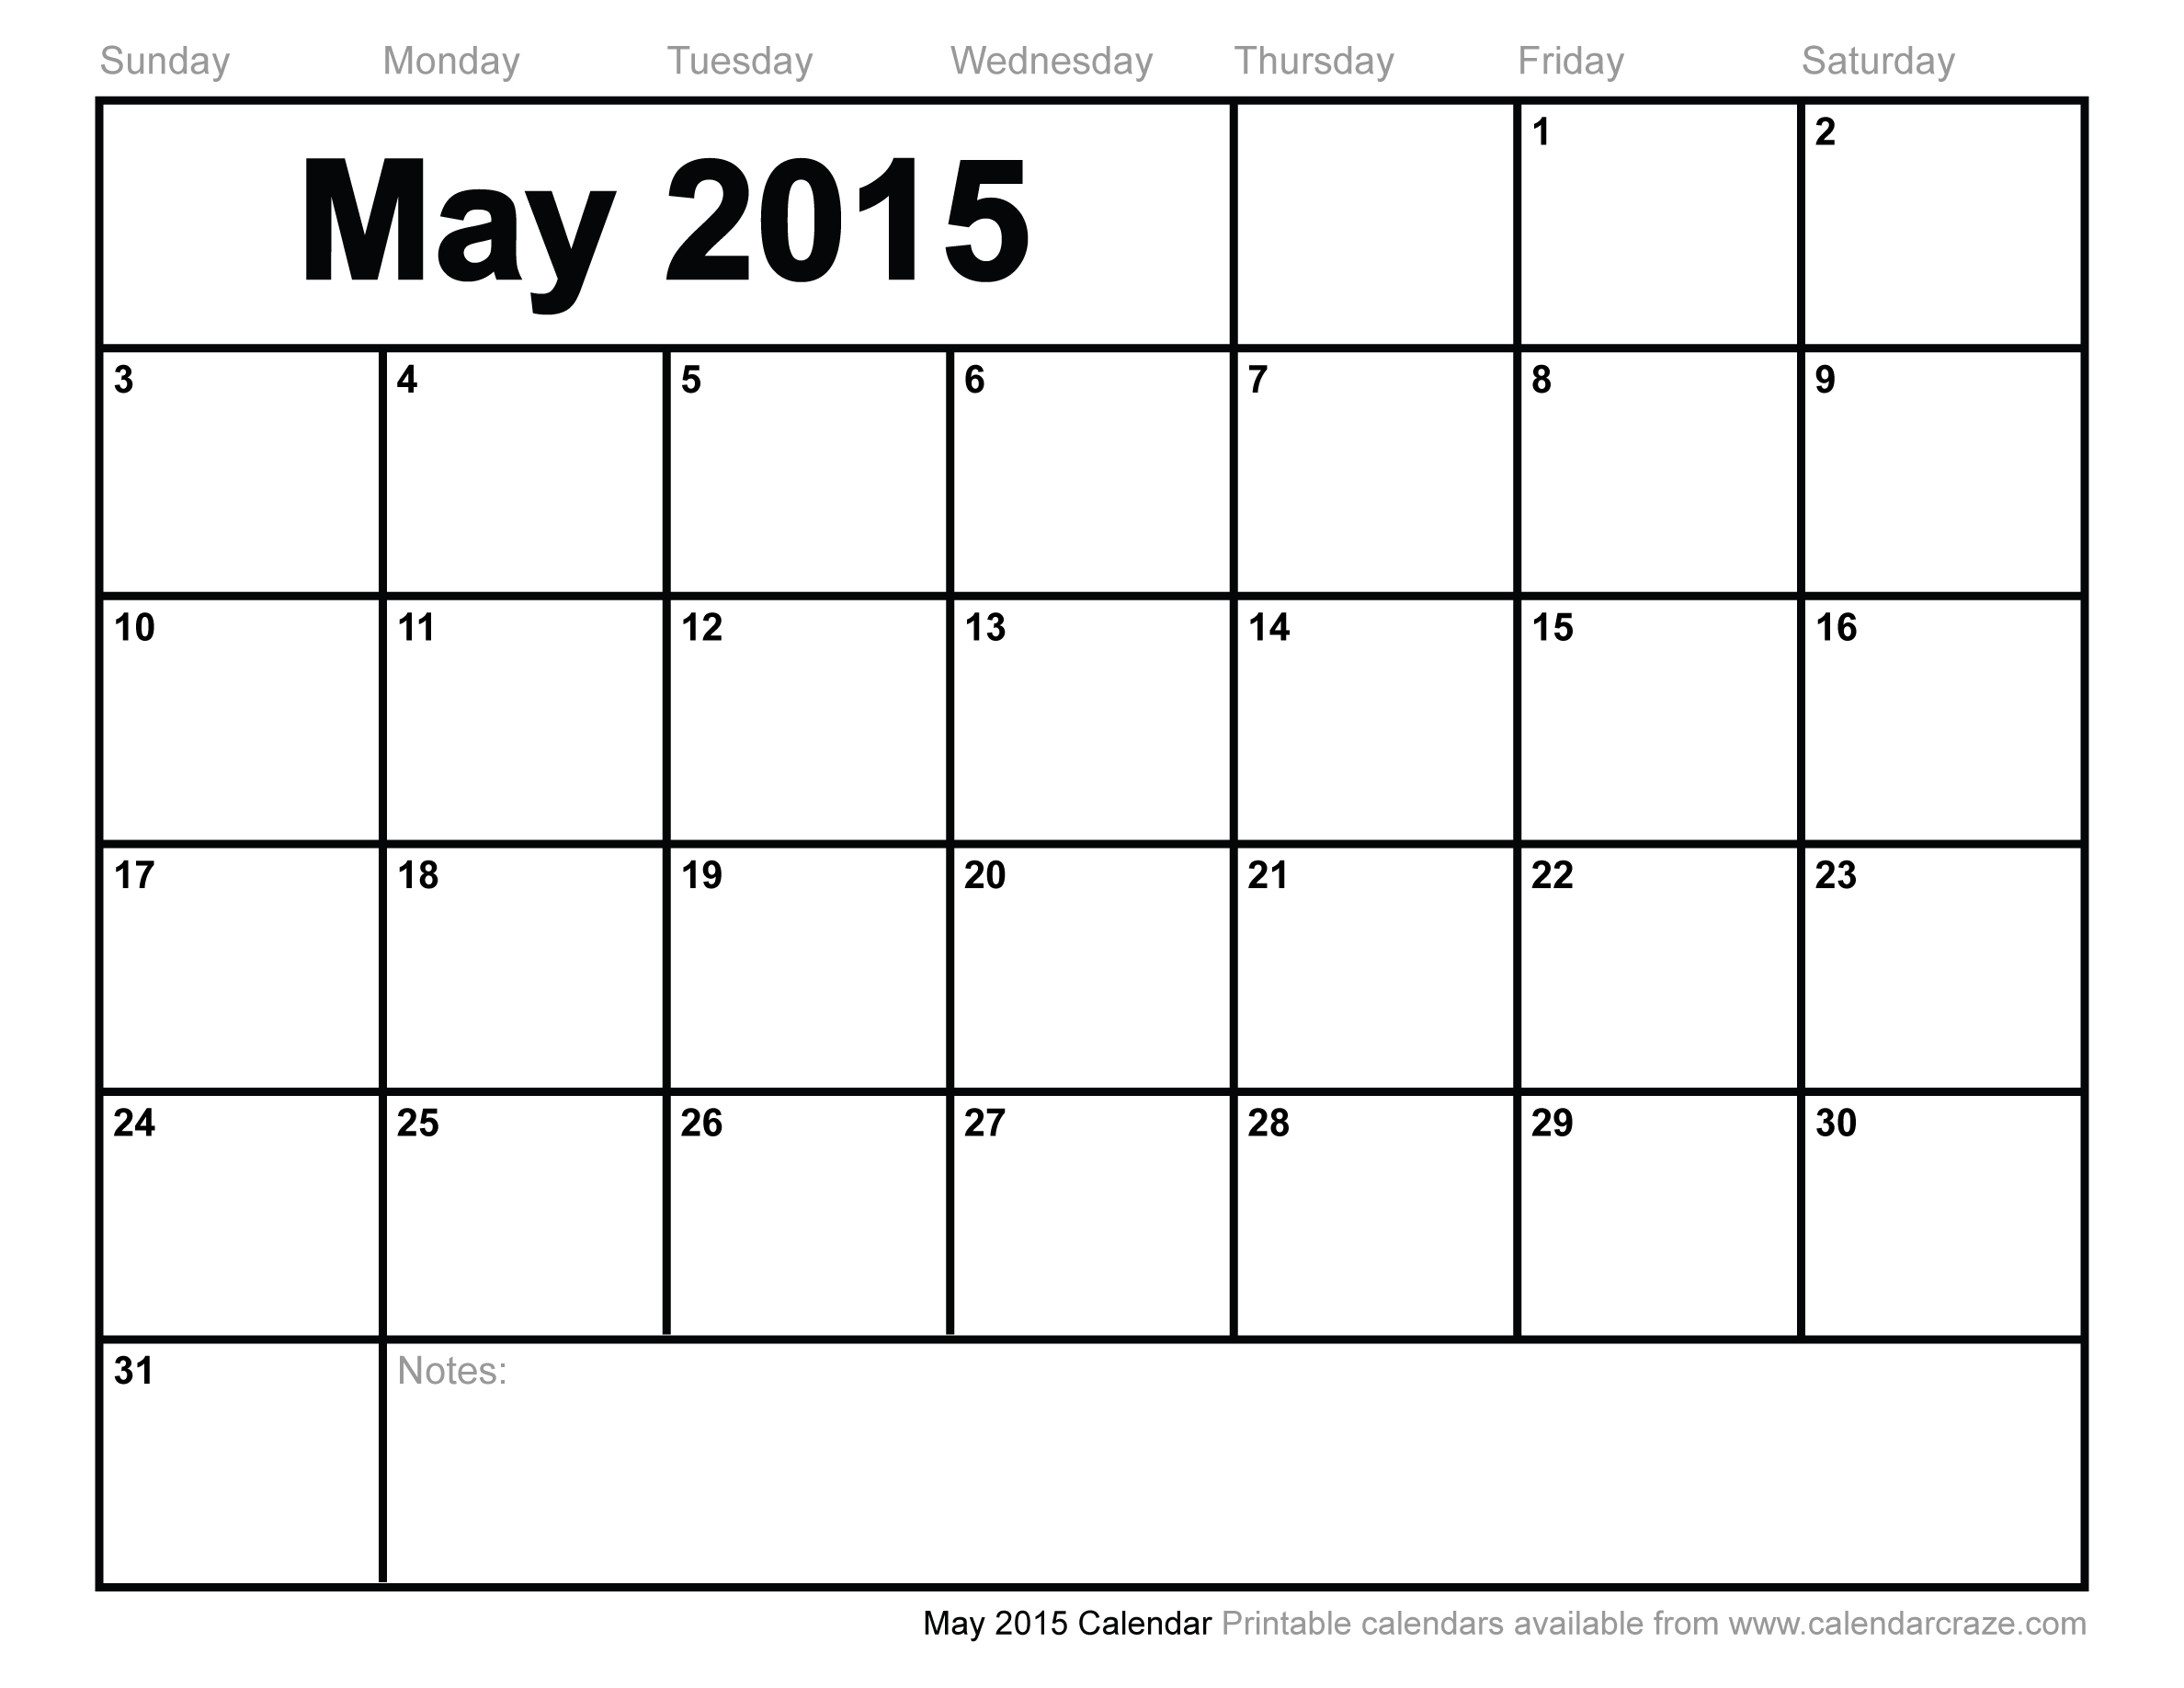 5 Images of May 2015 Calendar Printable